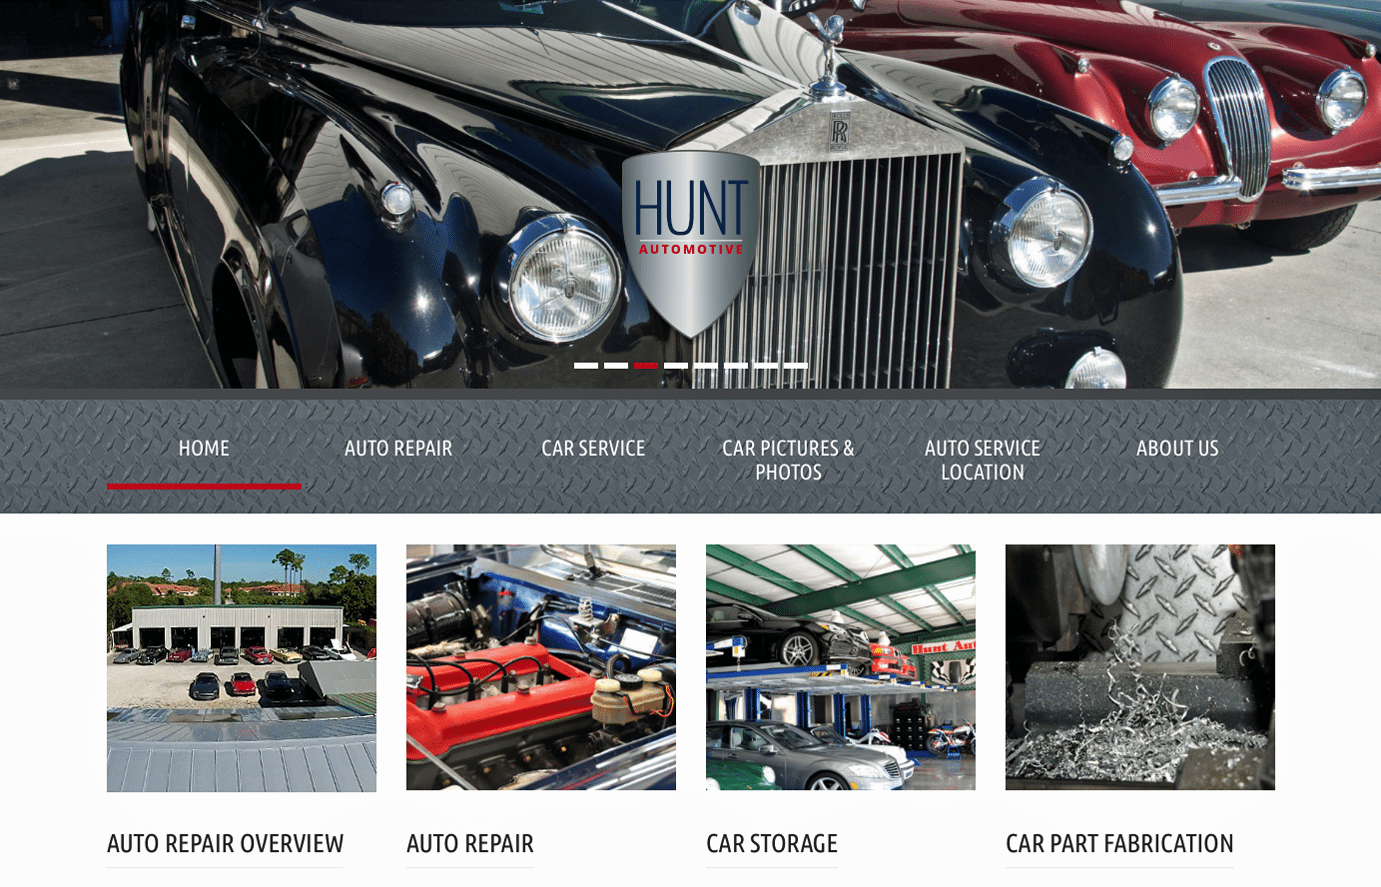 Automotive Branding Agency | Hunt